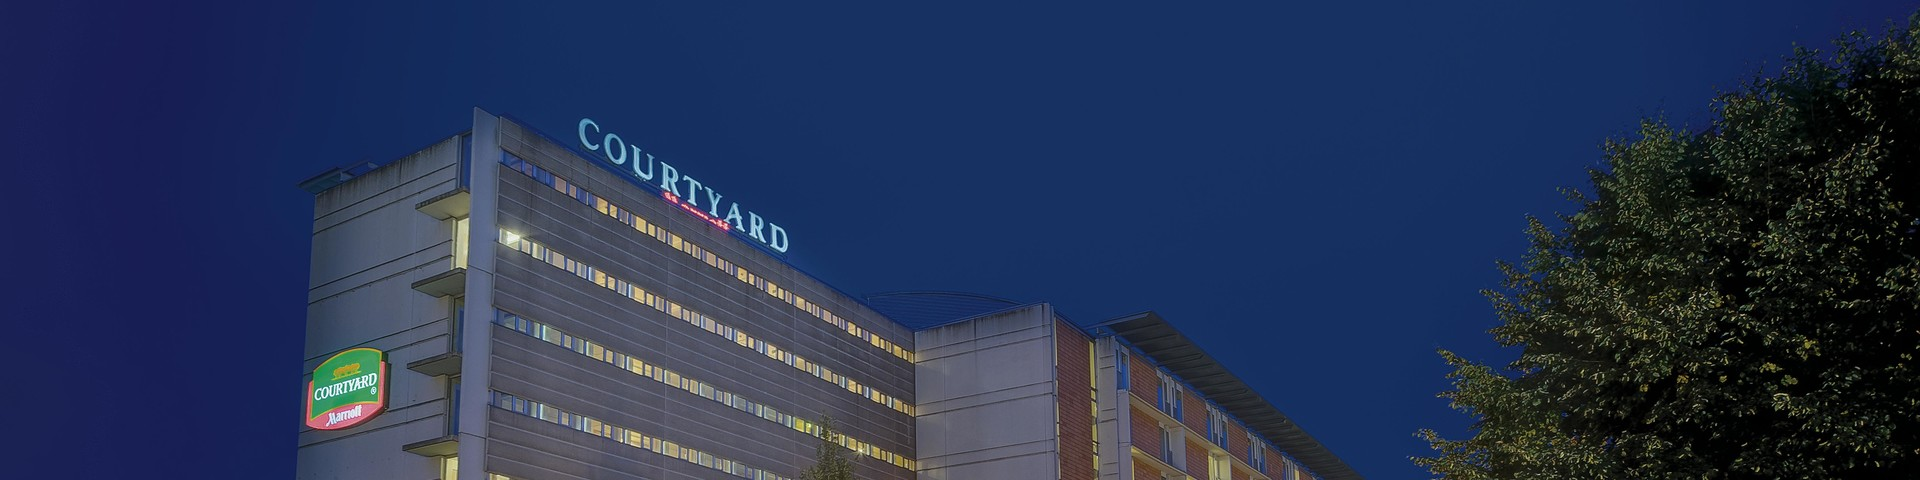 Courtyard by Marriott Linz - Aussenansicht bei Nacht © Courtyard by Marriott Linz